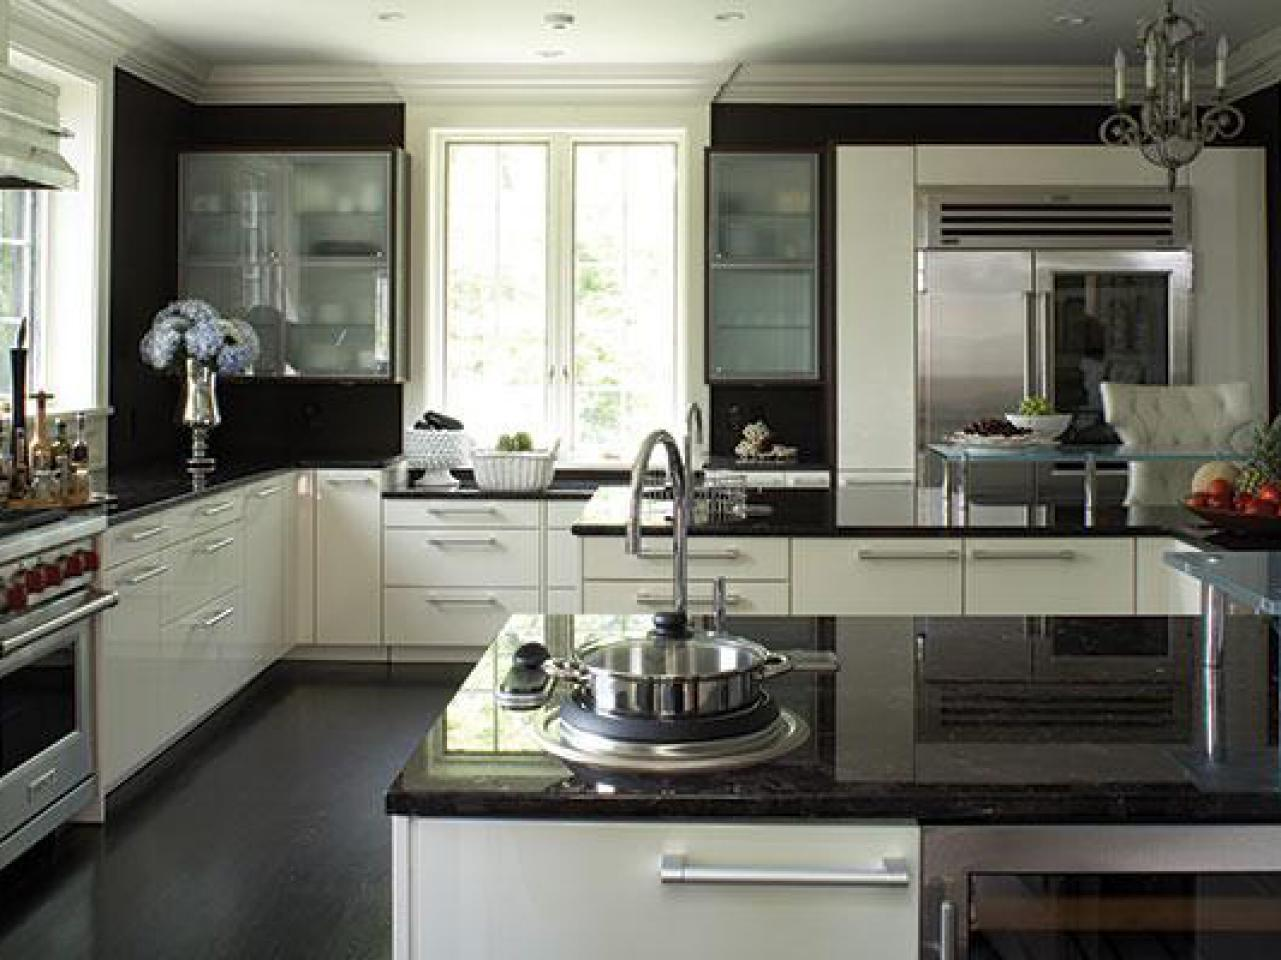 Black Granite Countertops - a Daring Touch of ... on Black Granite Countertops  id=29003